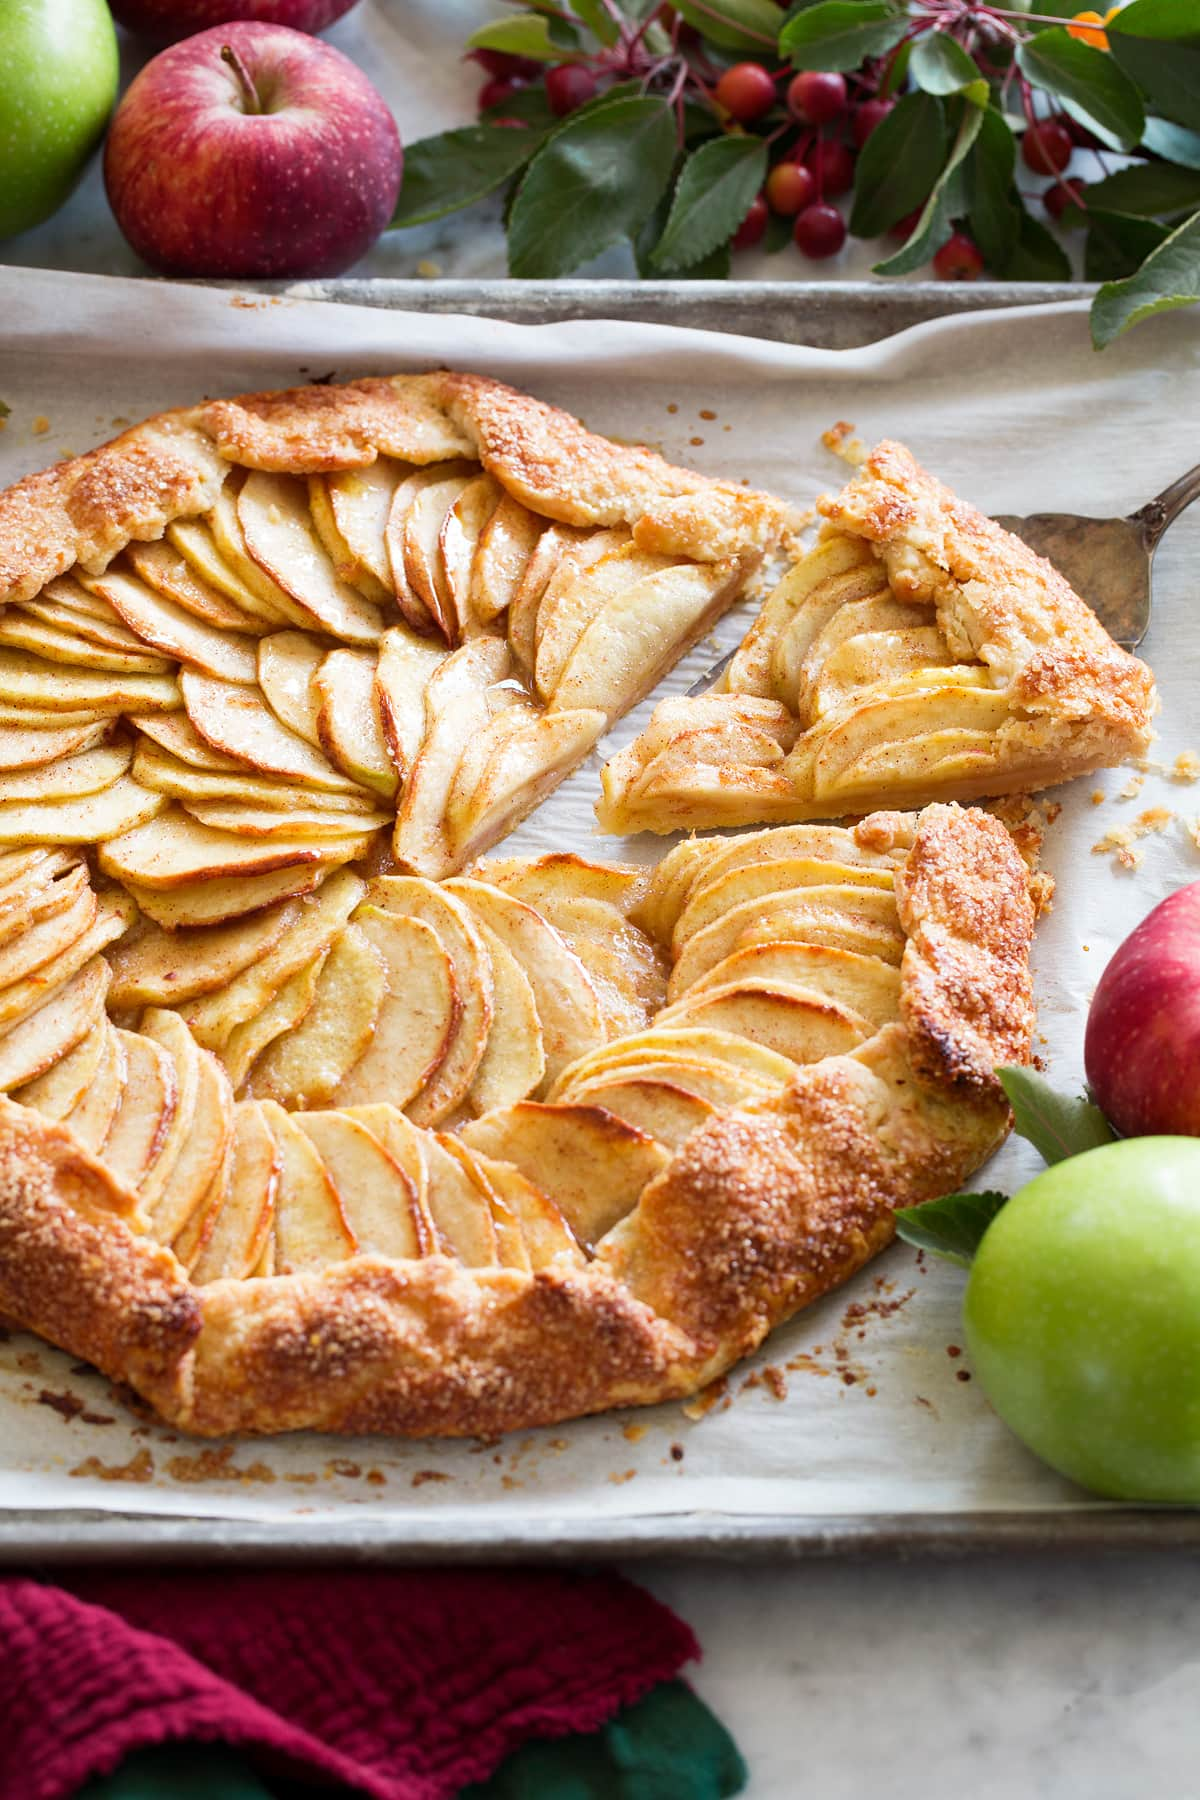 Apple galette with a slice being removed.